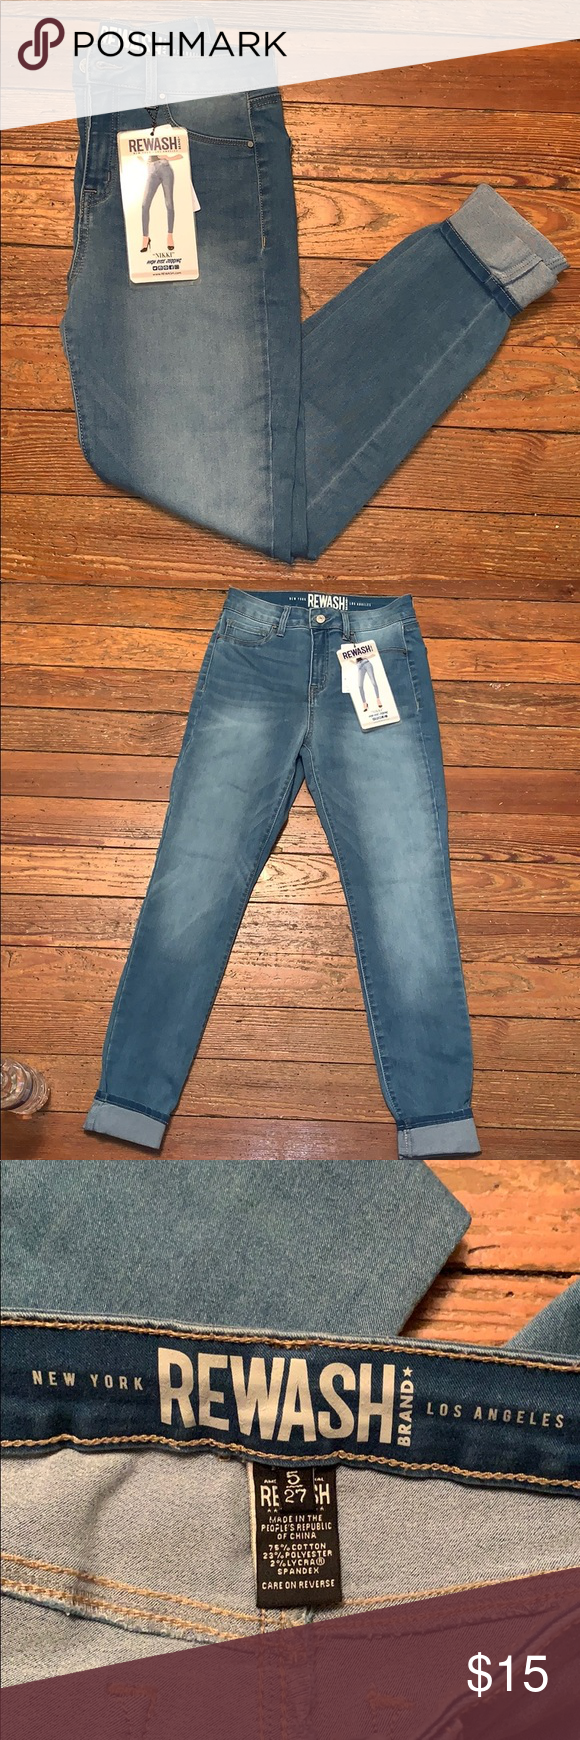 c14073c743552 REWASH Nikki High Rise Jeggings Beautiful jeggings, stretchy and high  waisted. Size 5/27 Rewash Jeans Skinny